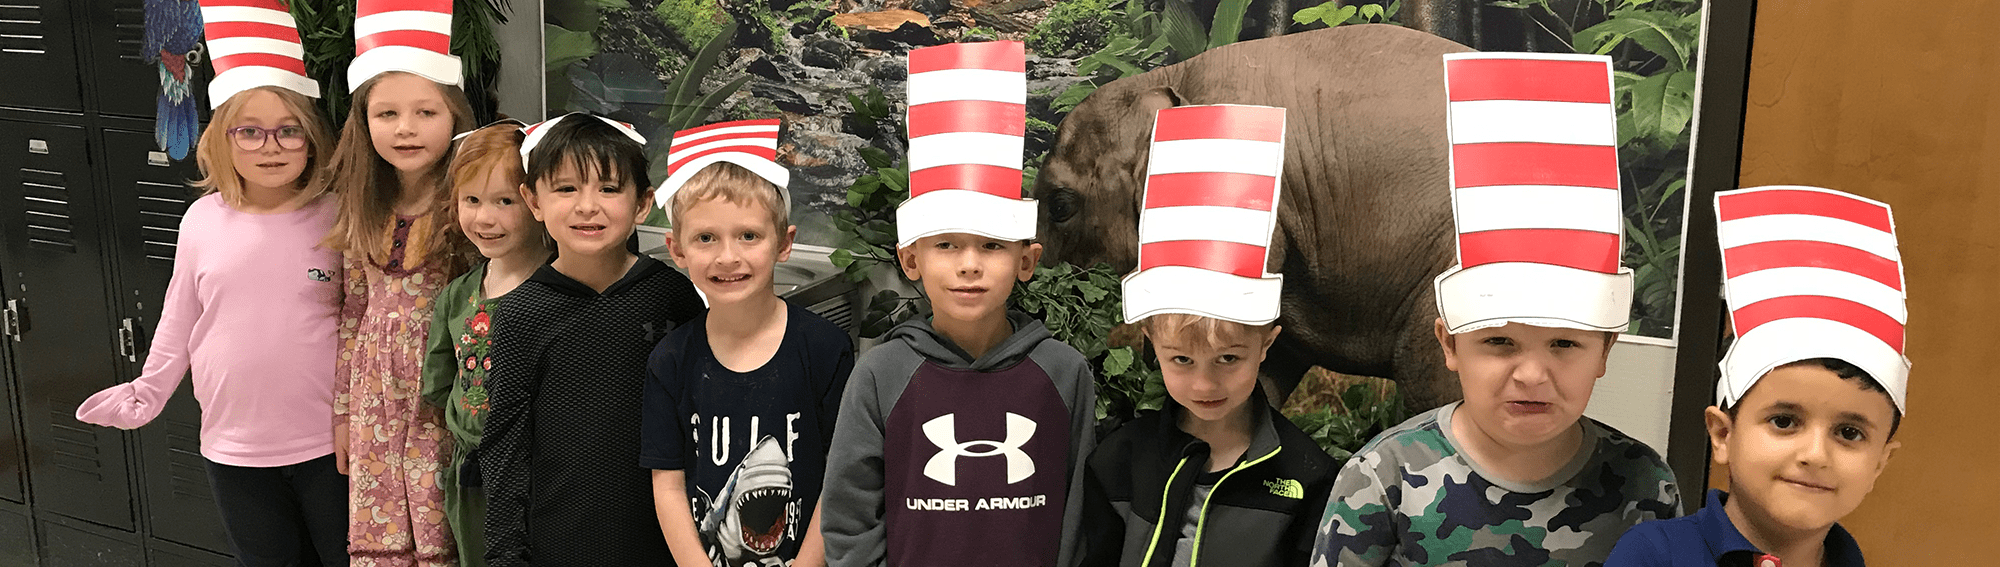 Students wearing paper cut outs of the cat's hat from The Cat in the Hat posing together